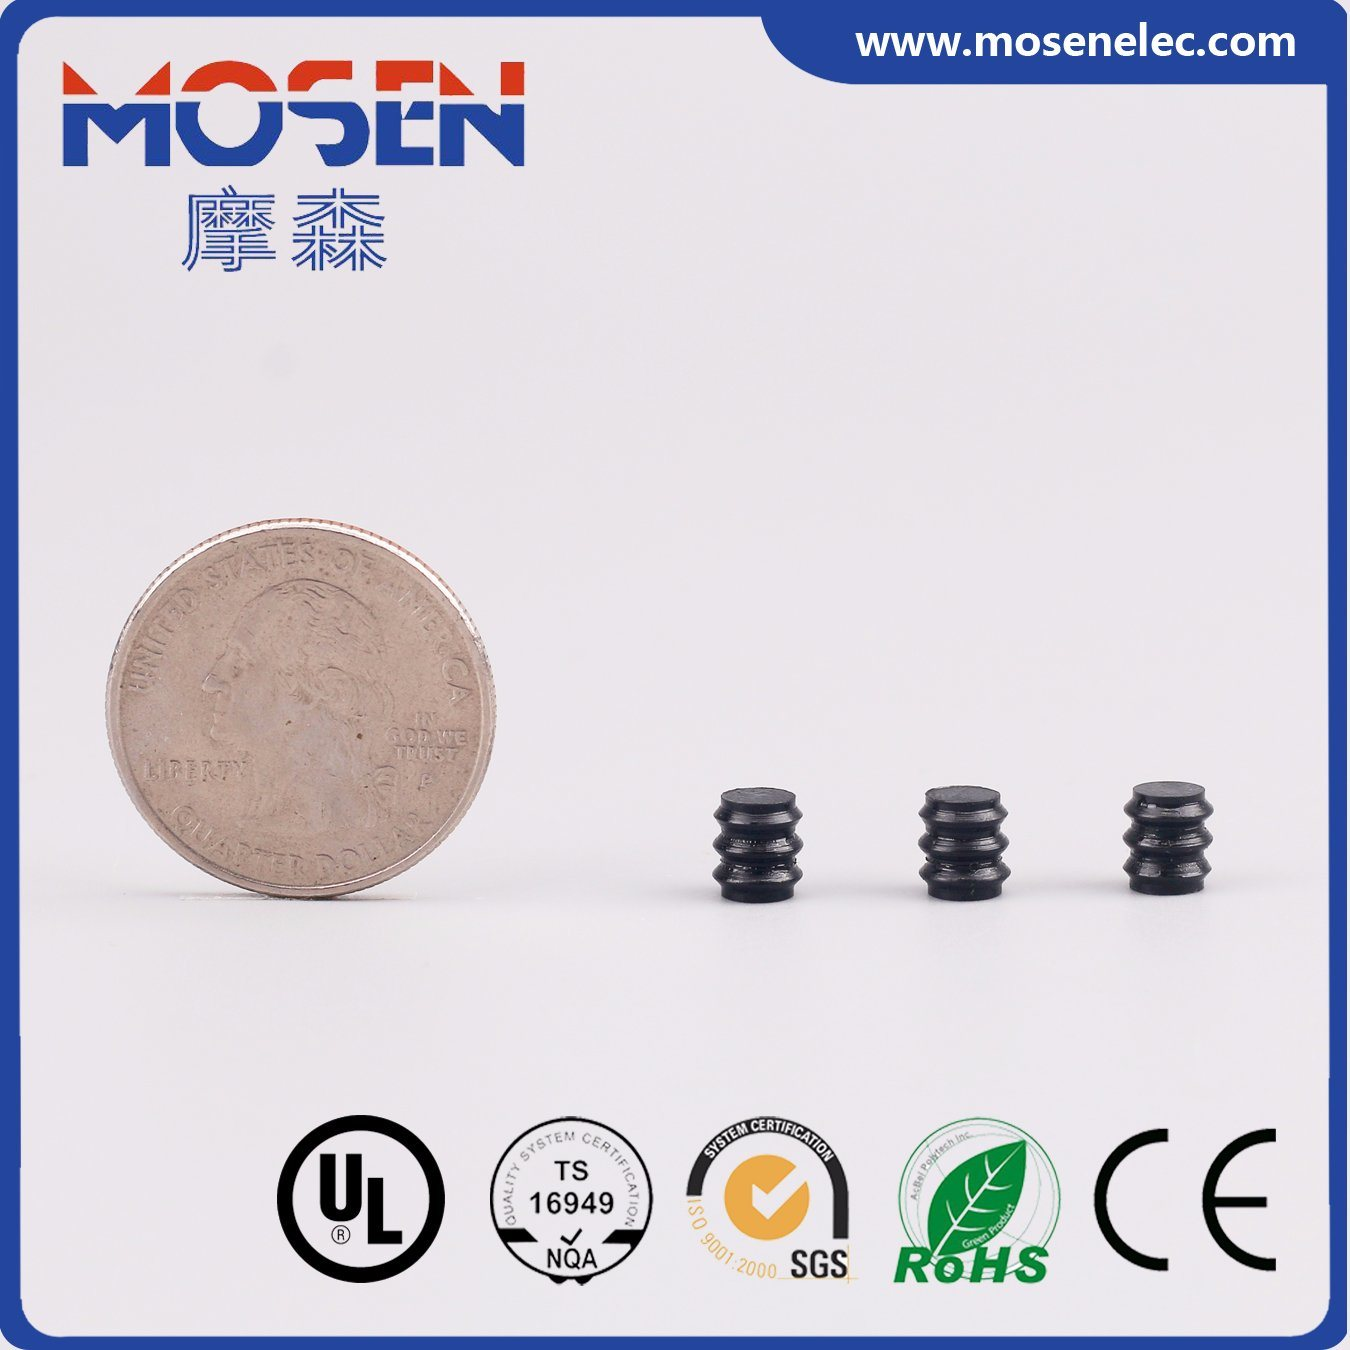 Wiring Harness Seals Schematic Diagram Automotive Wire Connectors Images Of China Black Auto Connector Silicone Alpine Stereo